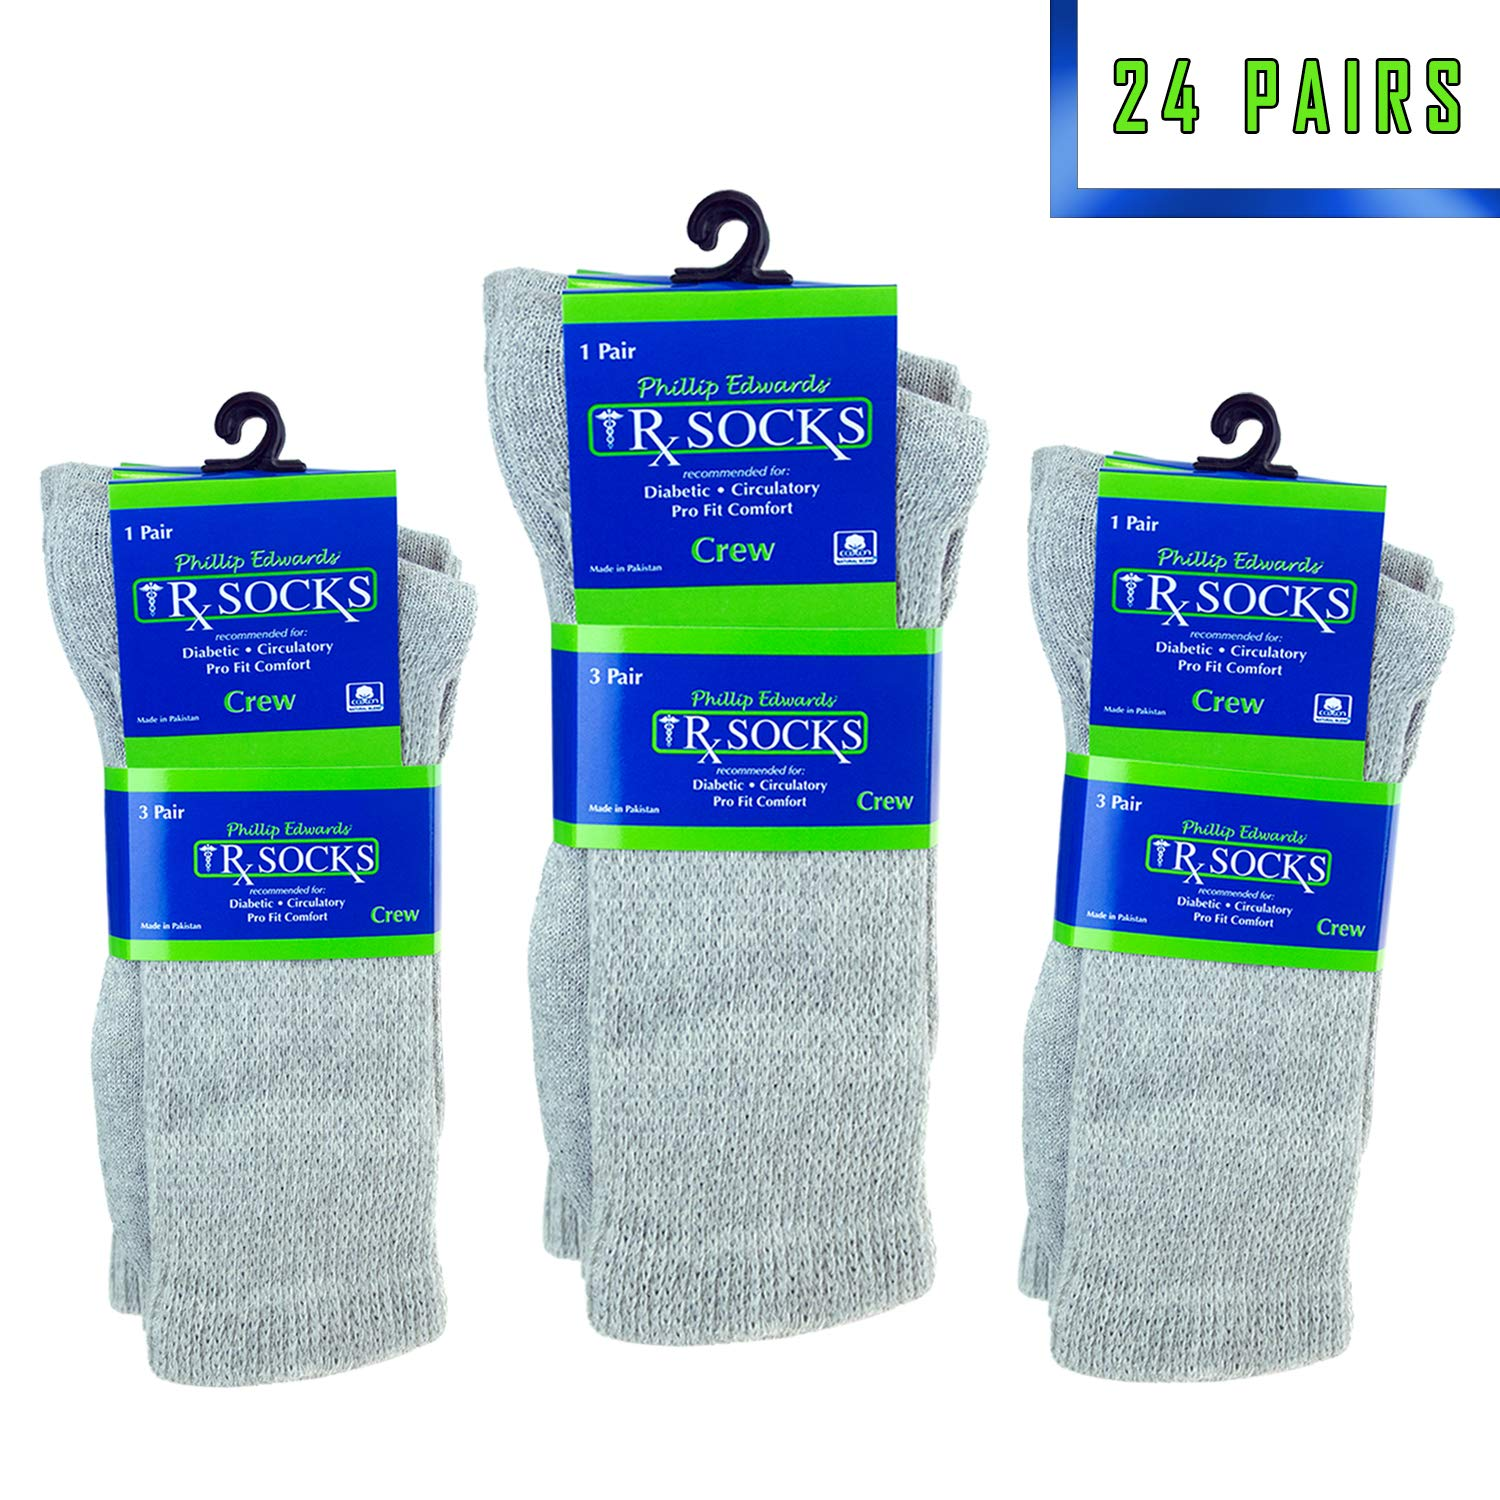 24 Pairs Physicians Approved Diabetic Socks Crew Loose Fit Size 9-11 for Men and Women in Grey